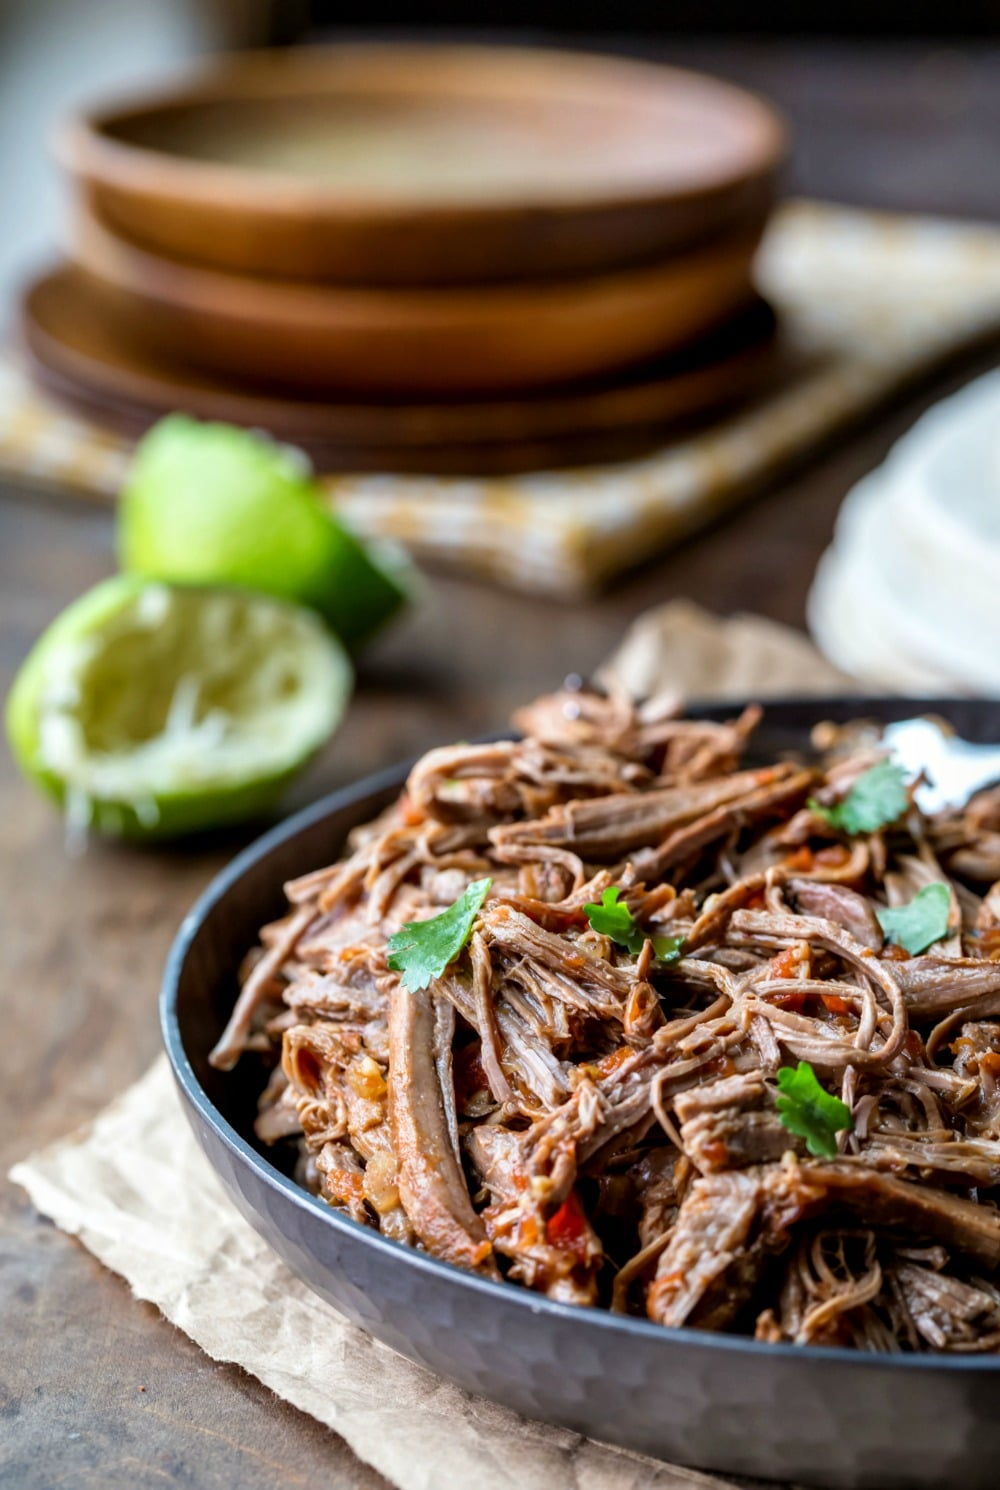 Mexican shredded beef in a metal dish next to two squeezed limes and a stack of wooden dishes